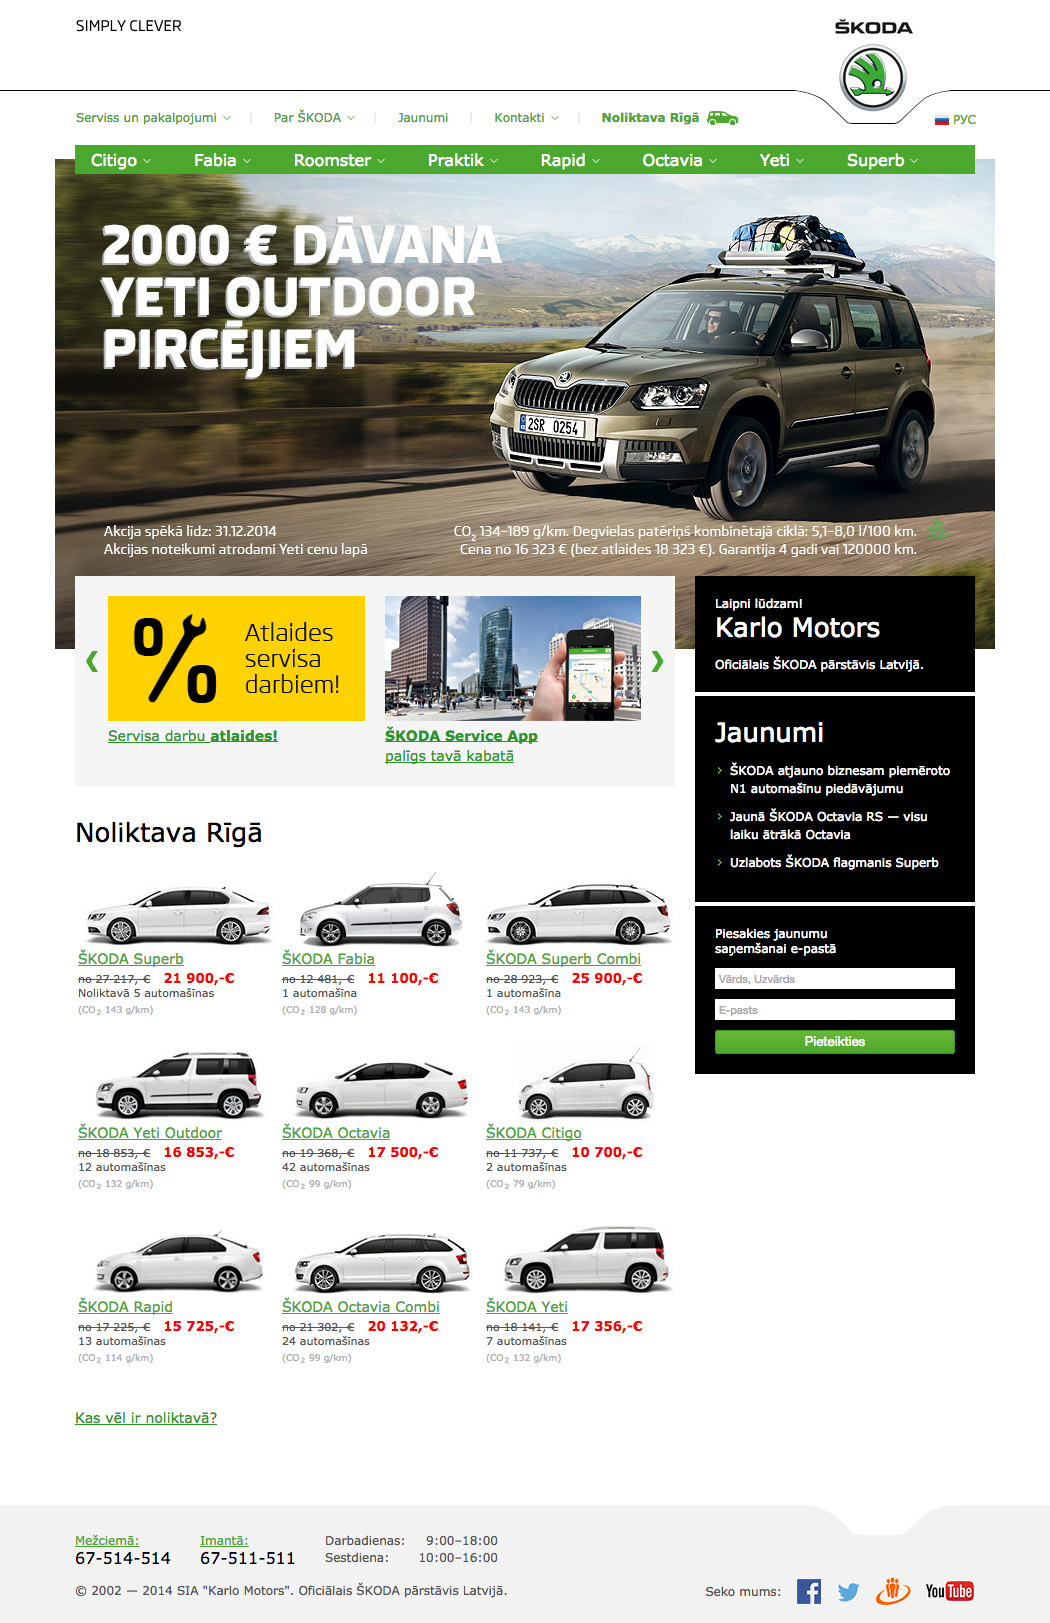 SKODA Latvia Website